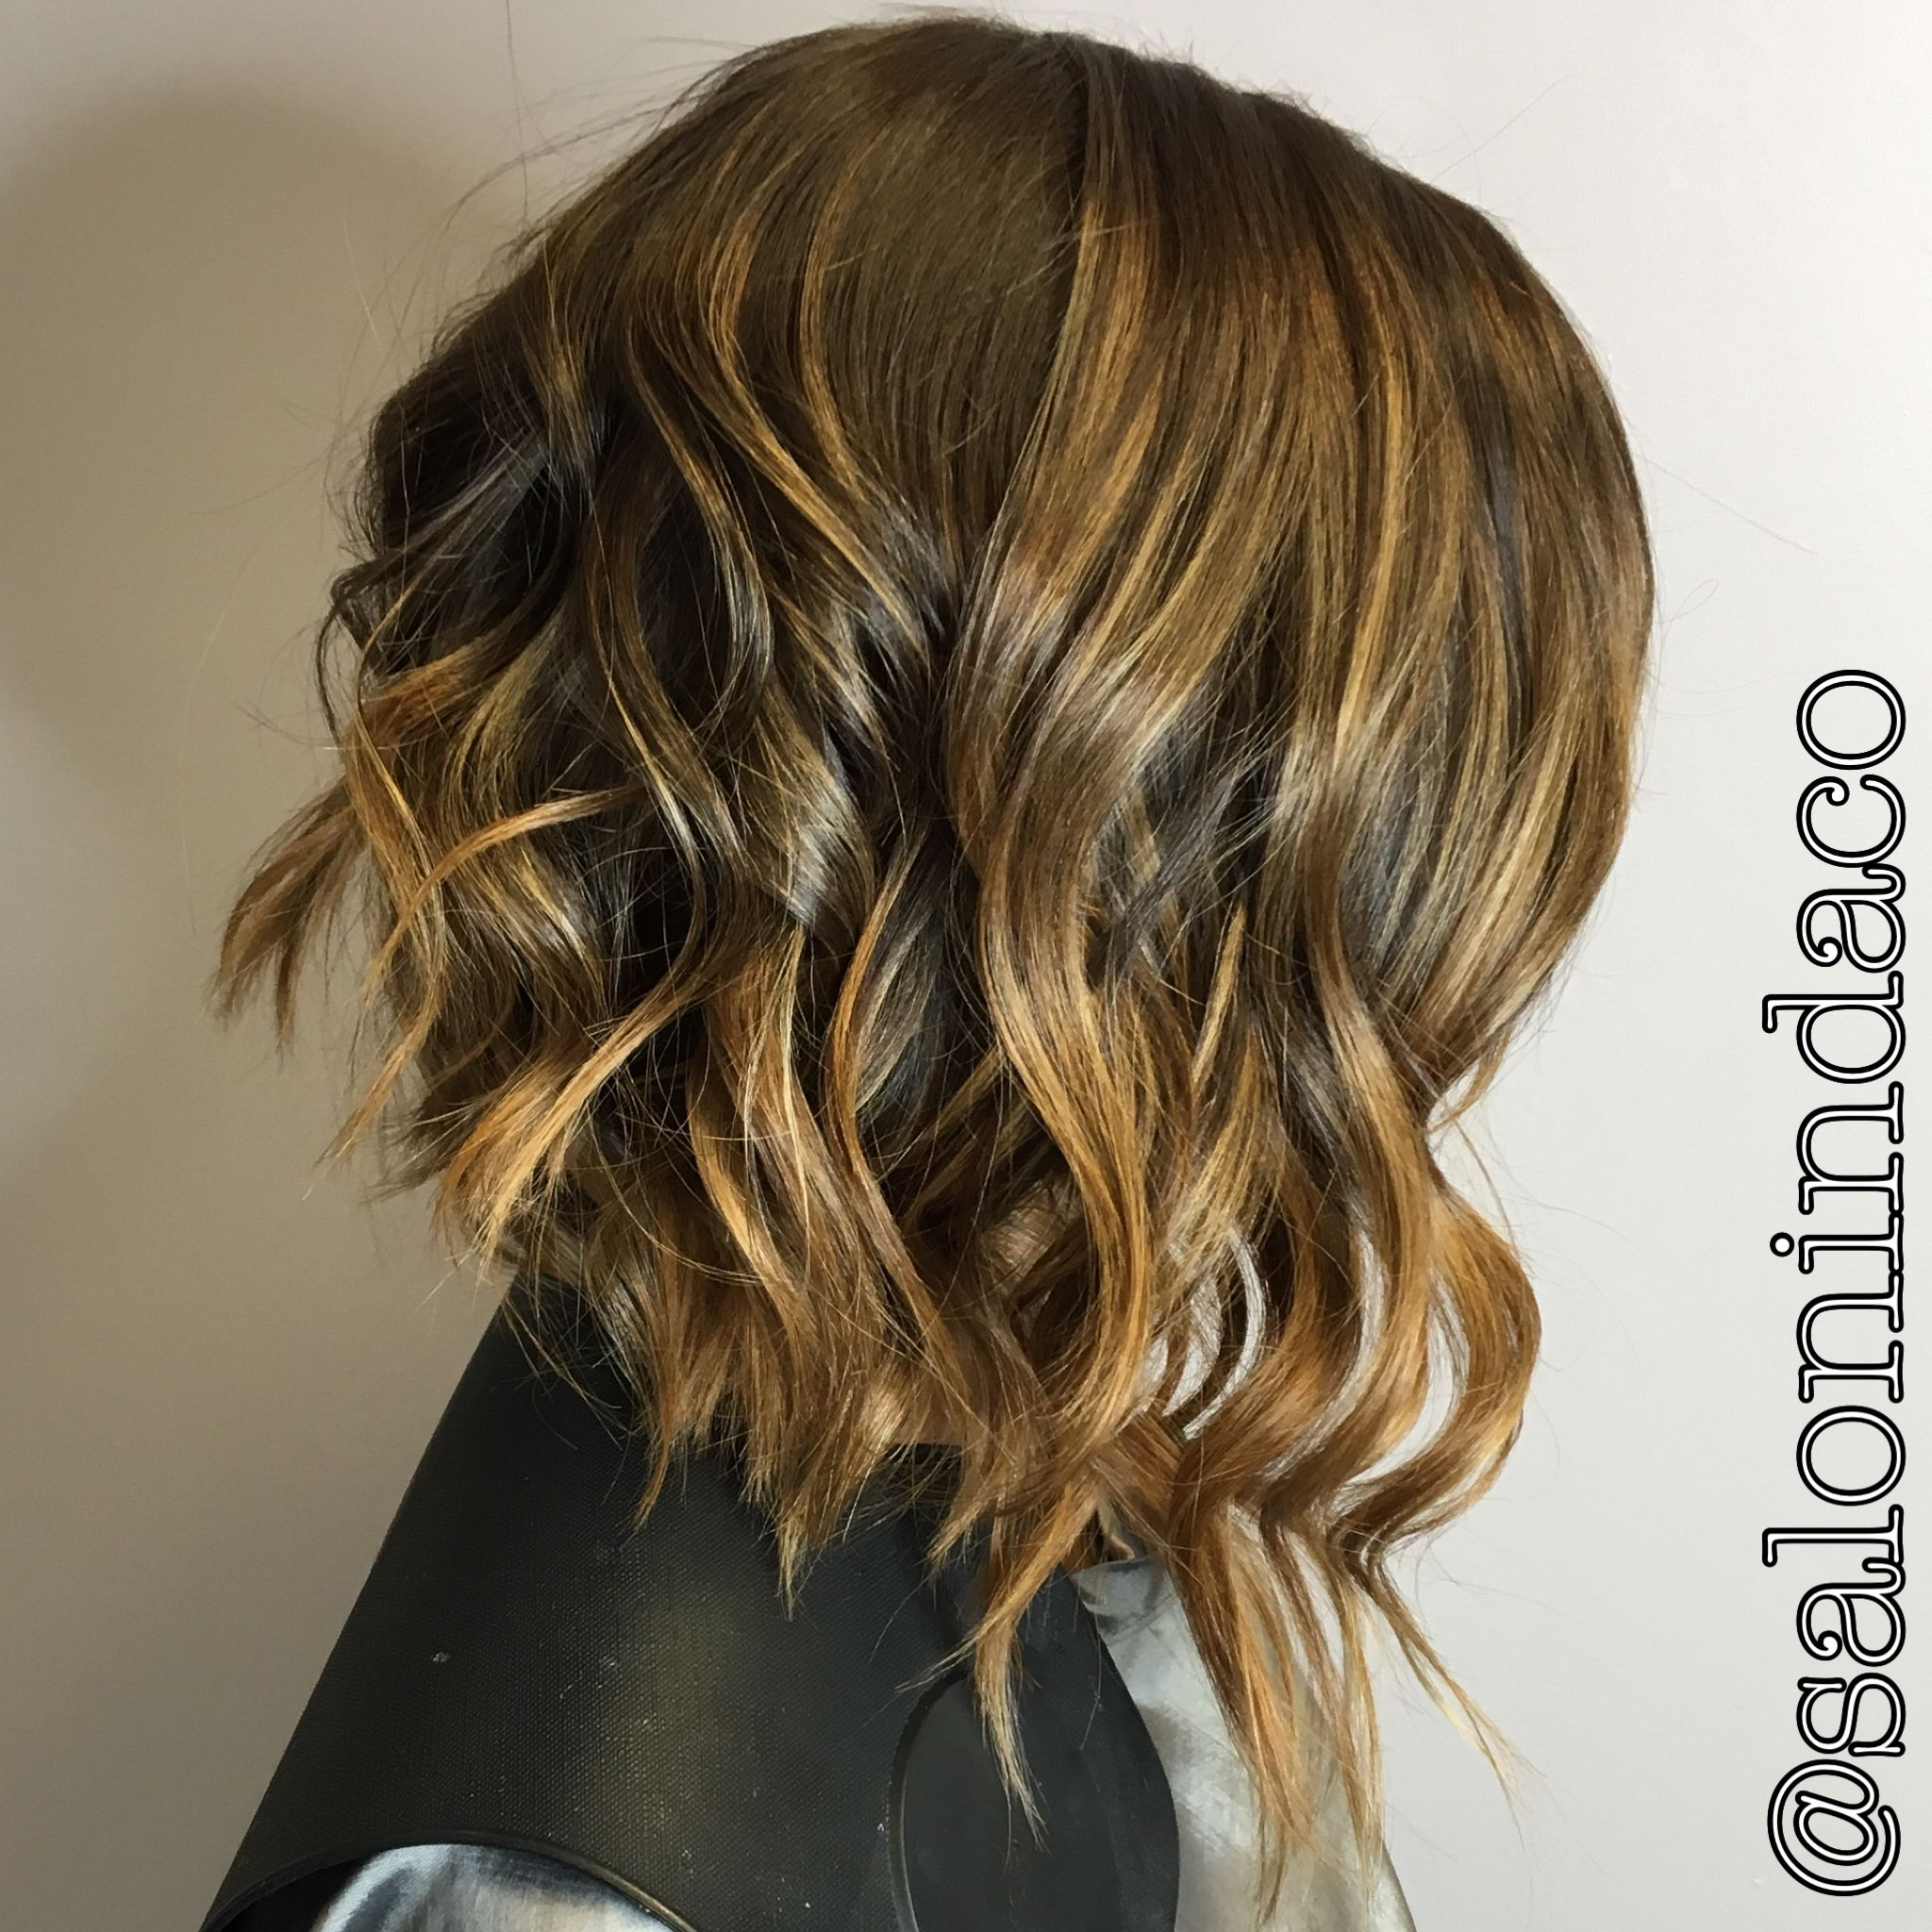 Swing Bob Cut Balayage Ombr Caramel Highlights With Chocolate Brown